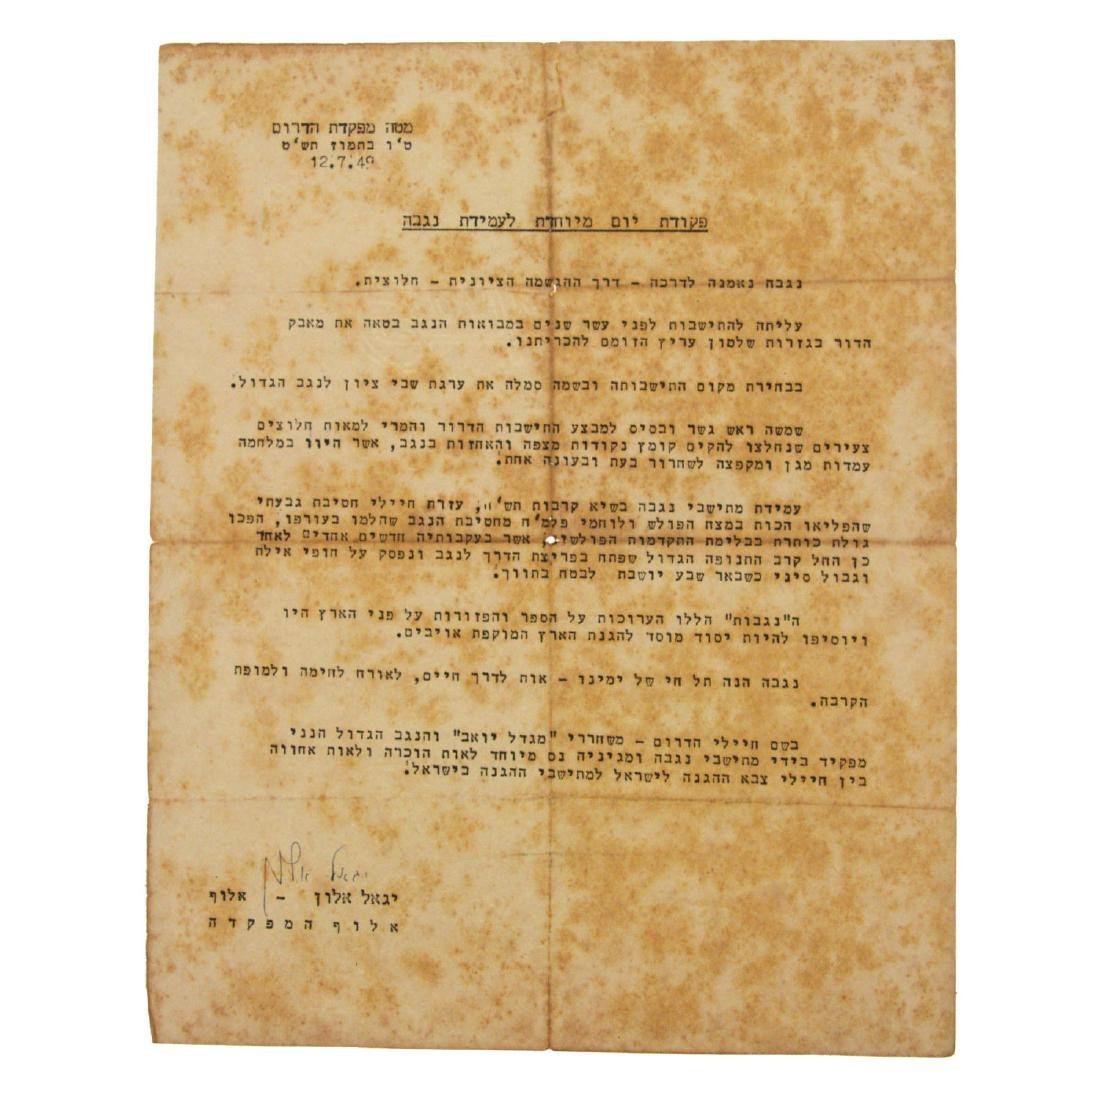 General Yigal Allon - Special Order for the Negba